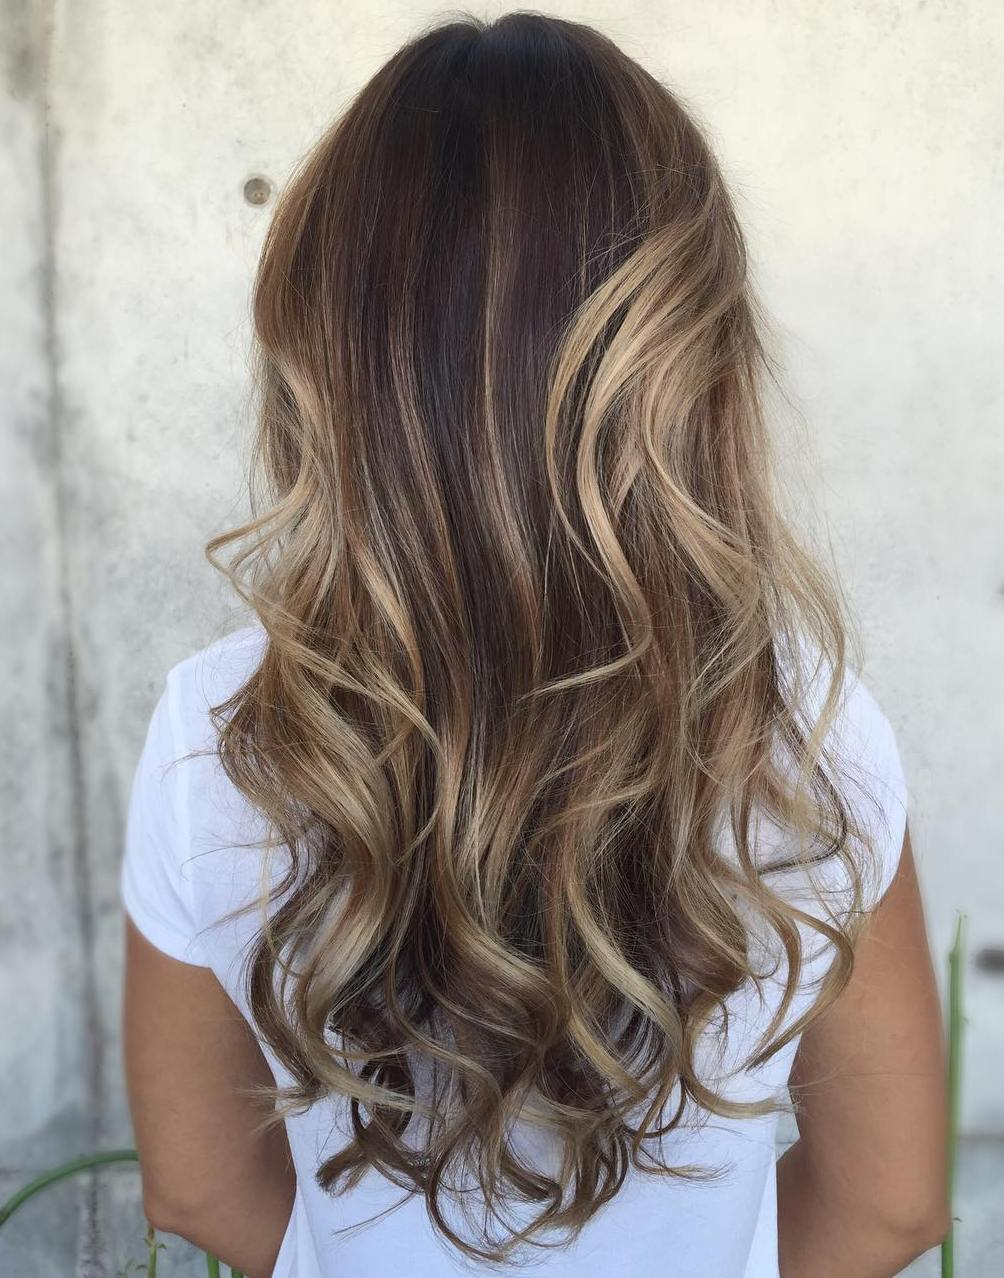 Subtle Sandy Blonde Highlights for Wavy Dark Brown Hair